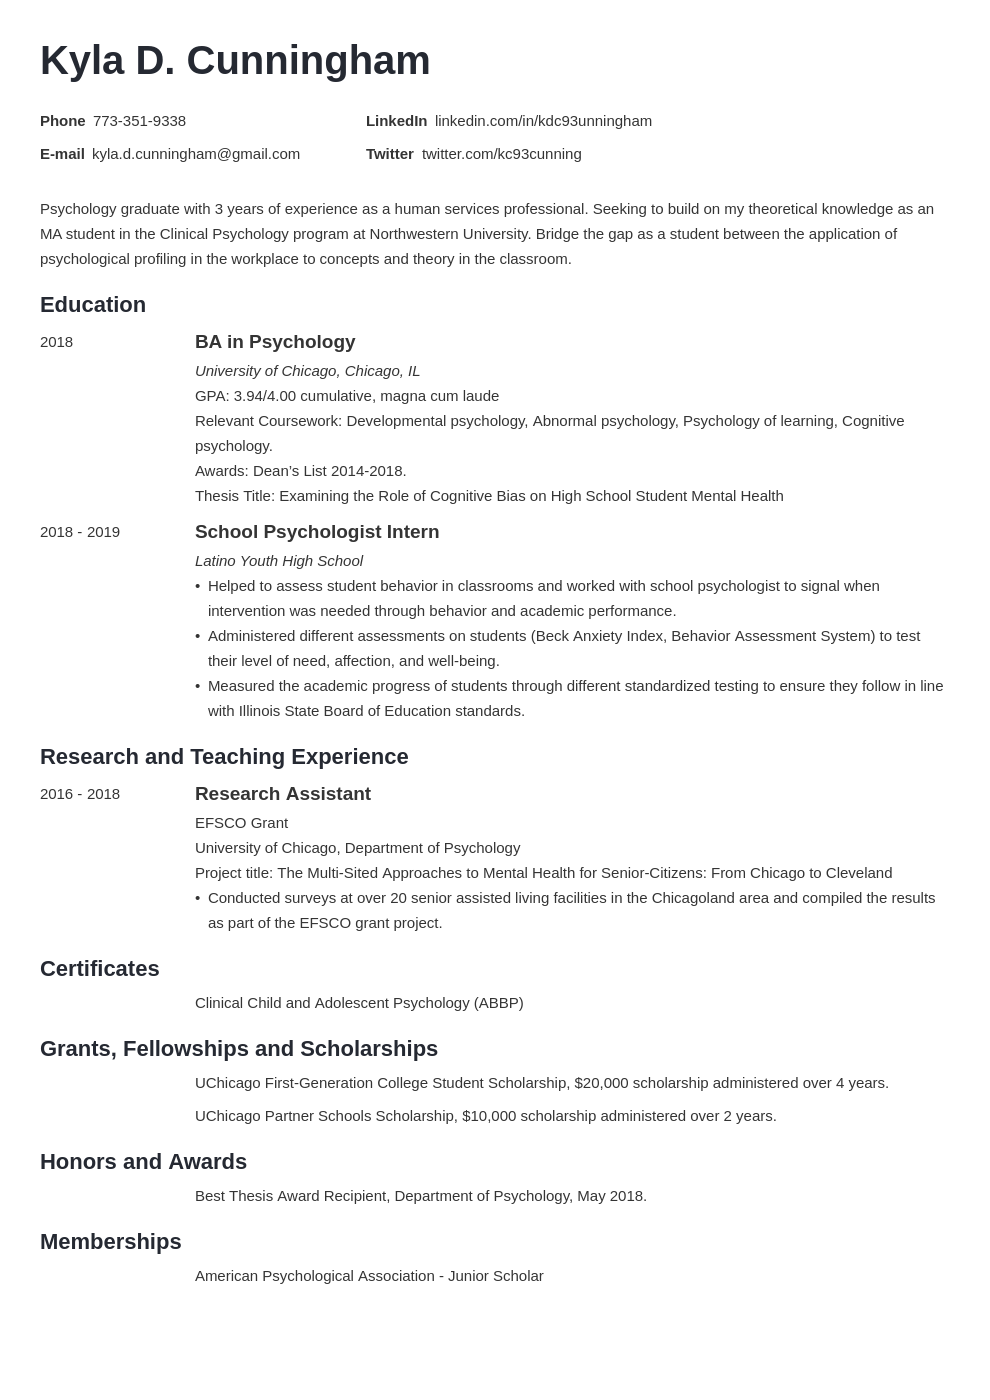 CV Example for PhD Candidates - myPerfectCV